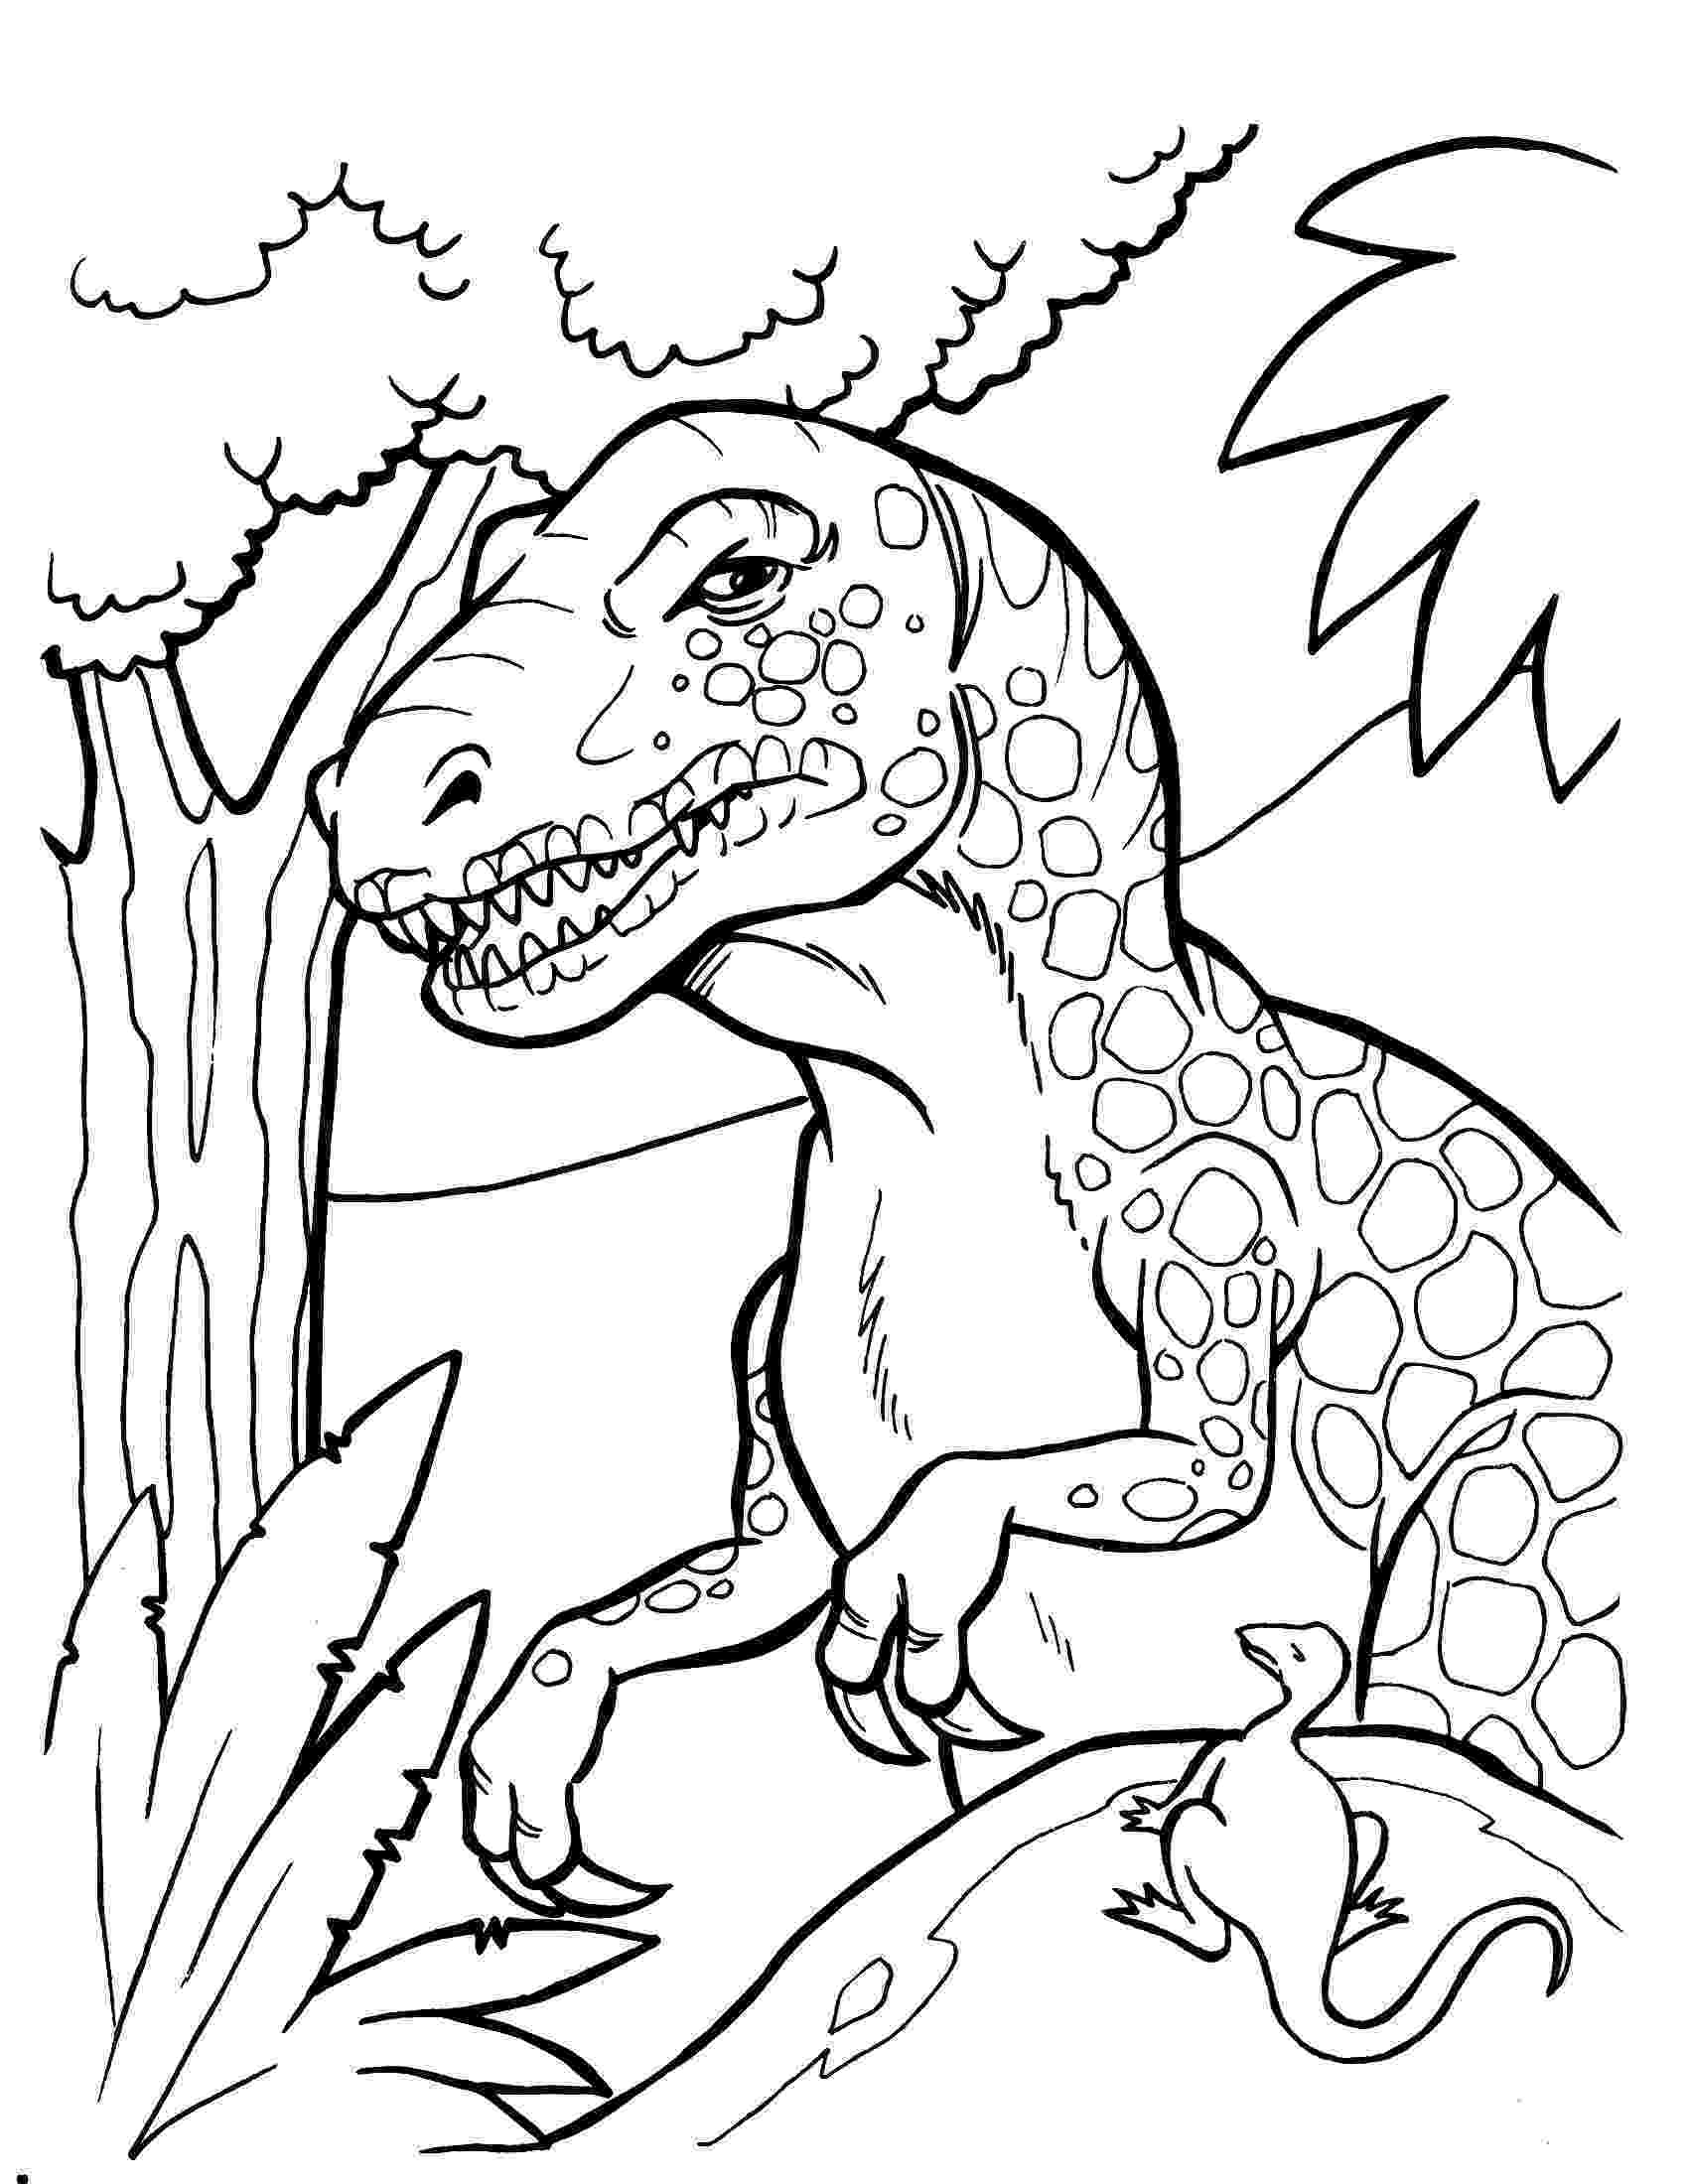 dinosaurs pictures triceratops cute royalty free dinosaur cartoon clipart pictures dinosaurs